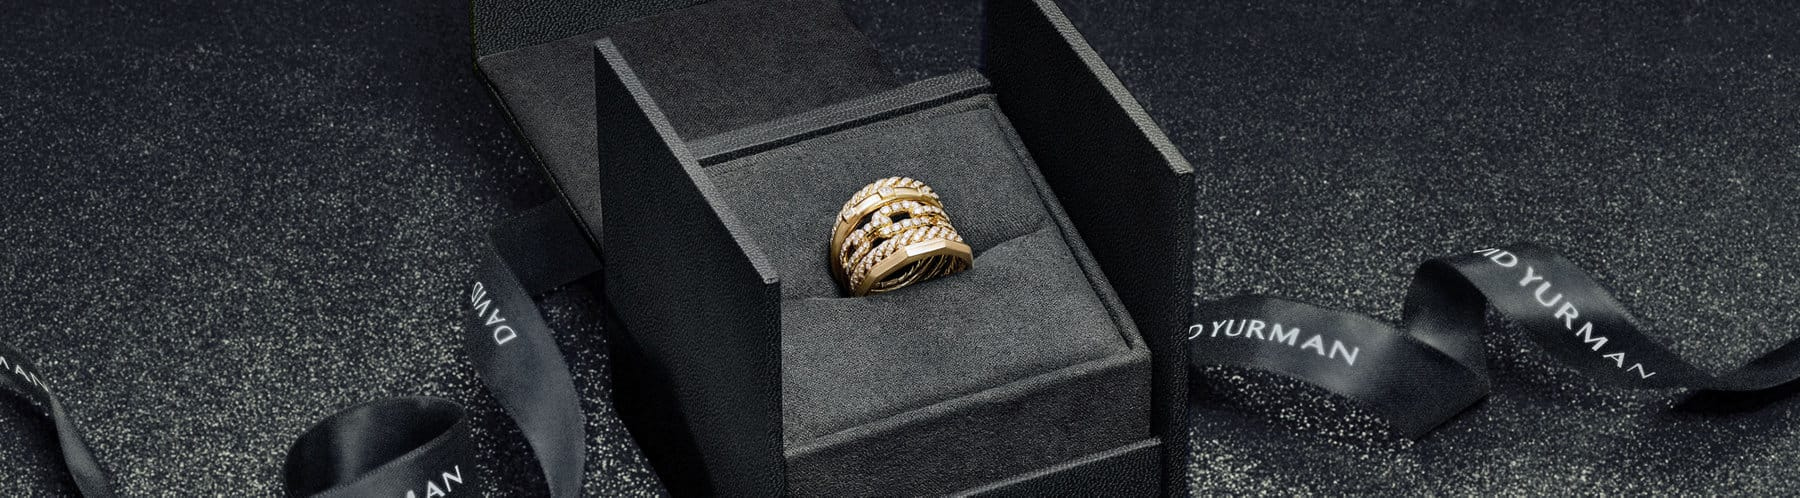 A color photo shows a David Yurman gift box with a gold and diamon Stax five row ring.